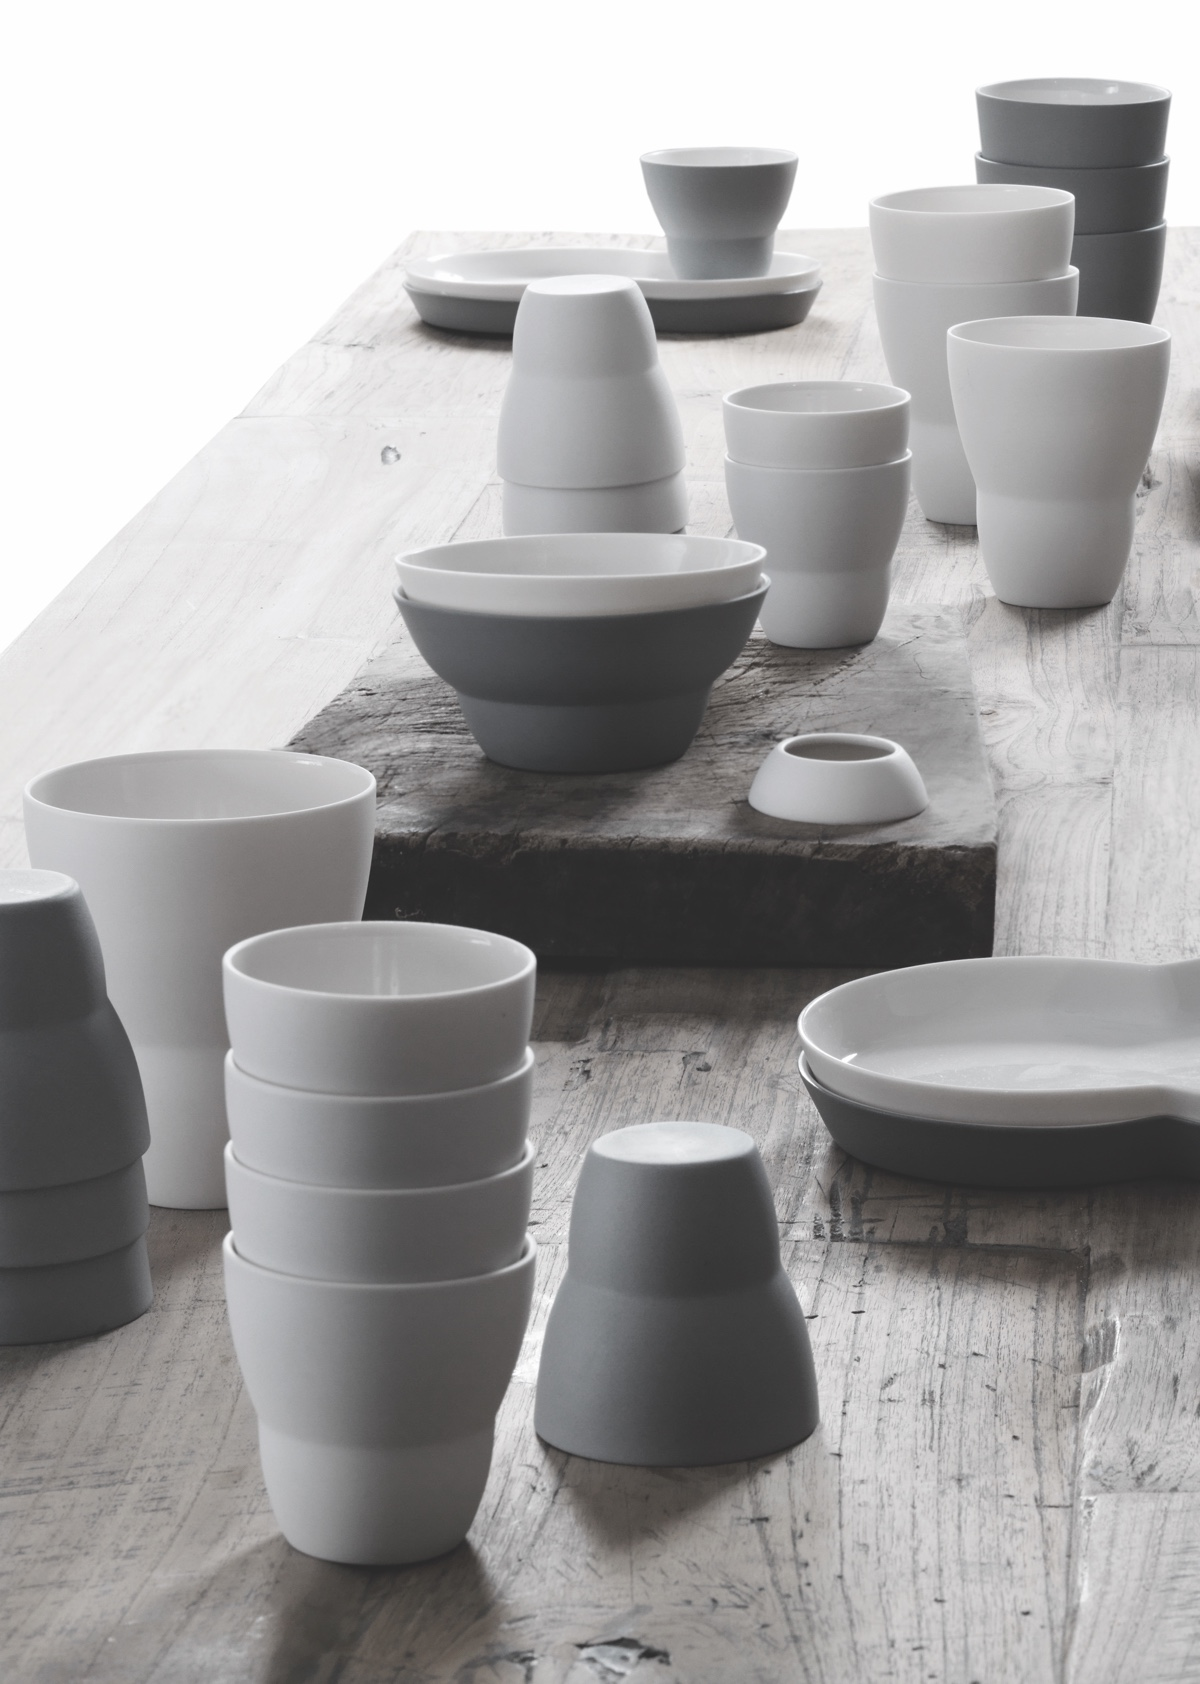 Vipp's ceramic collection was developed in collaboration with Danish ceramicist Annemette Kissow.